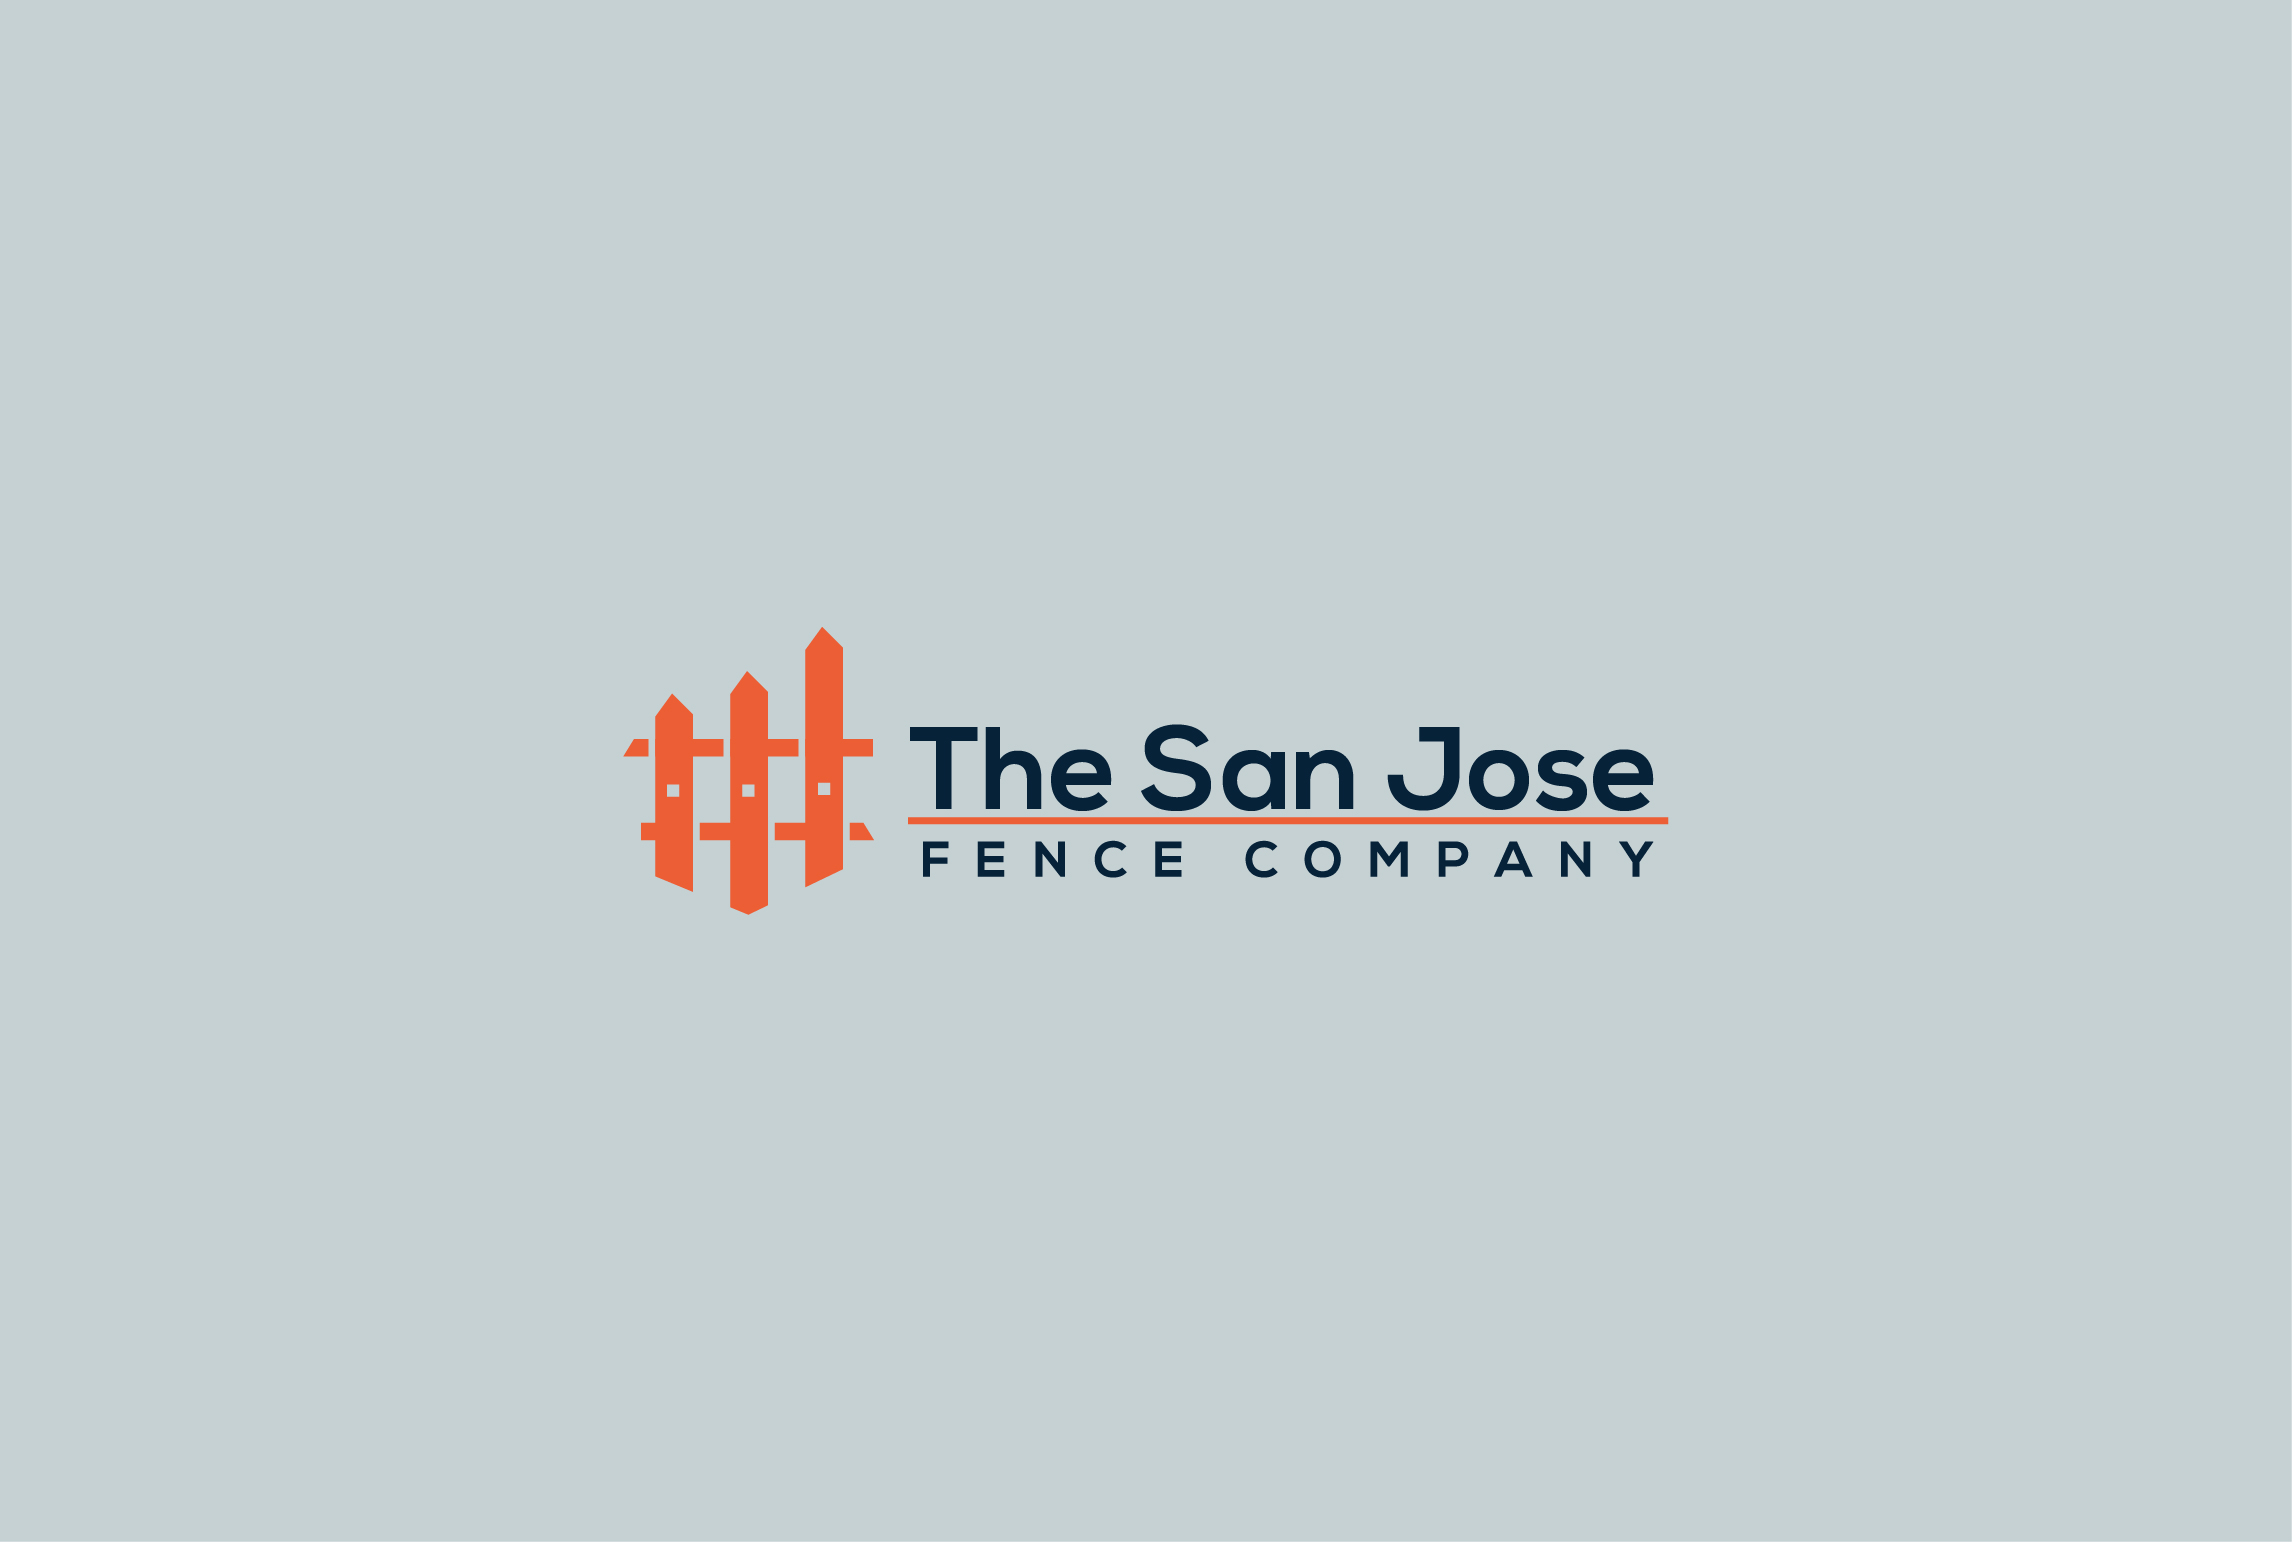 The San Jose Fence Company